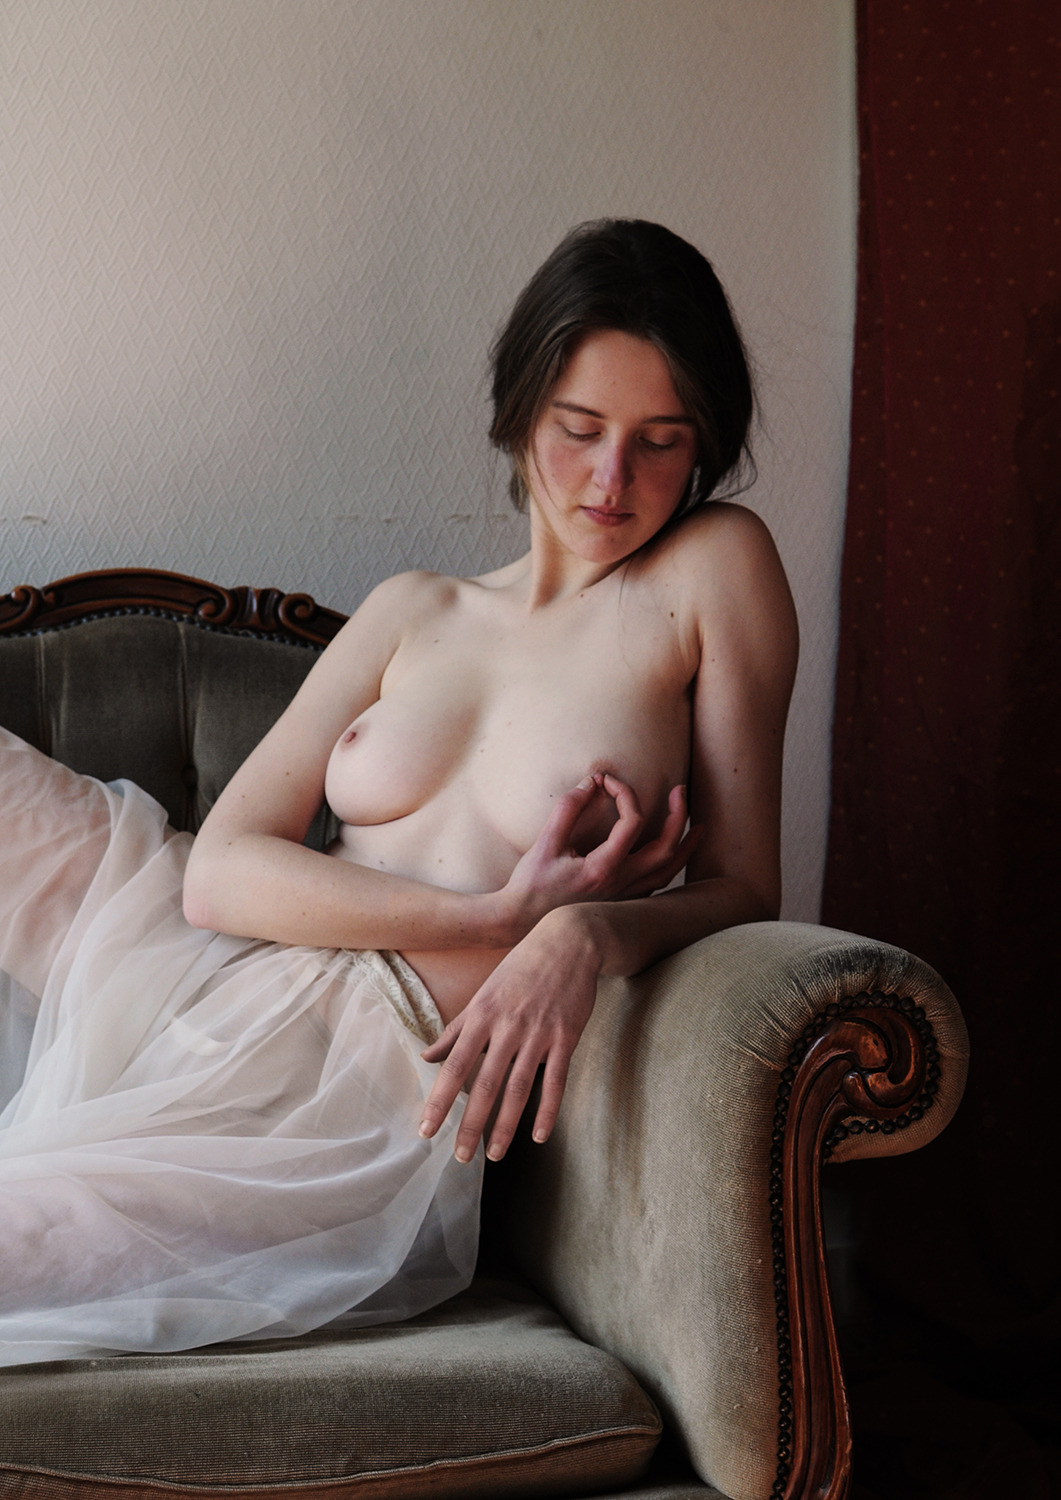 antoine-henault-photography helene topless boobs nips no bush